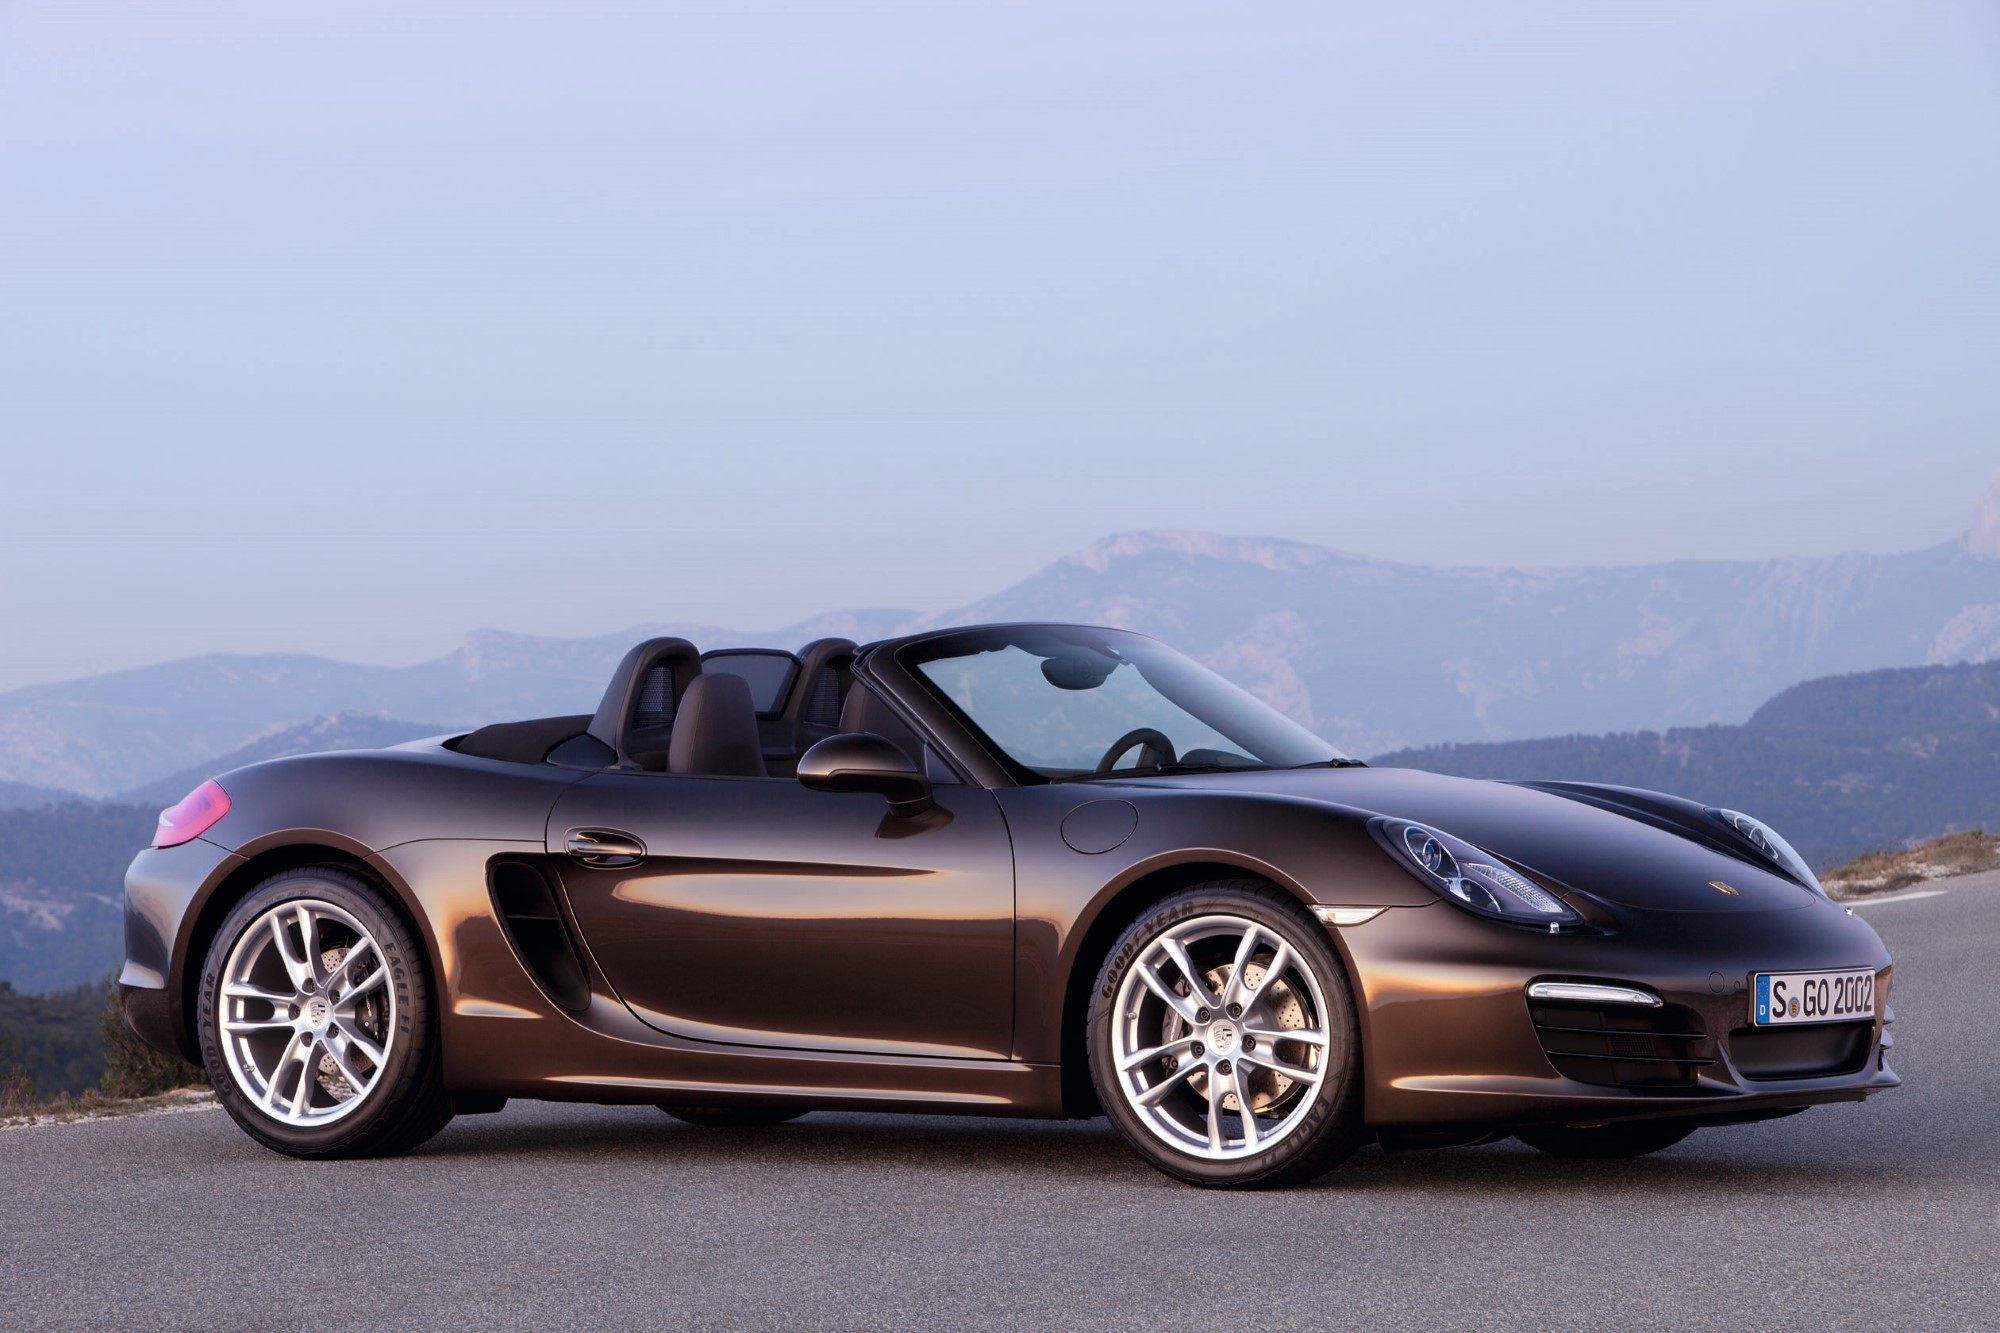 2014 Boxster #1